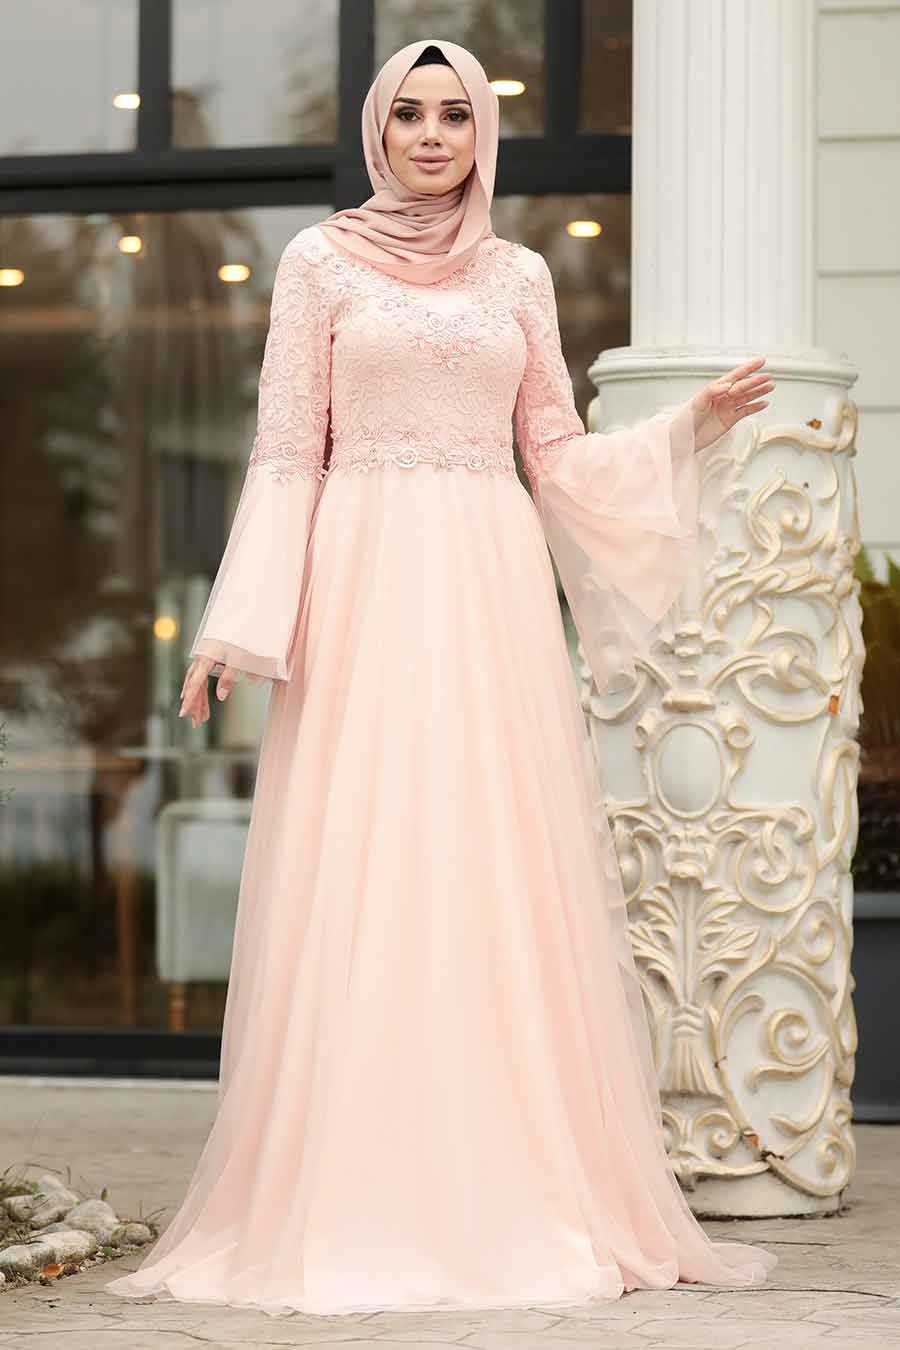 Salmon Pink Hijab Evening Dress 20571SMN